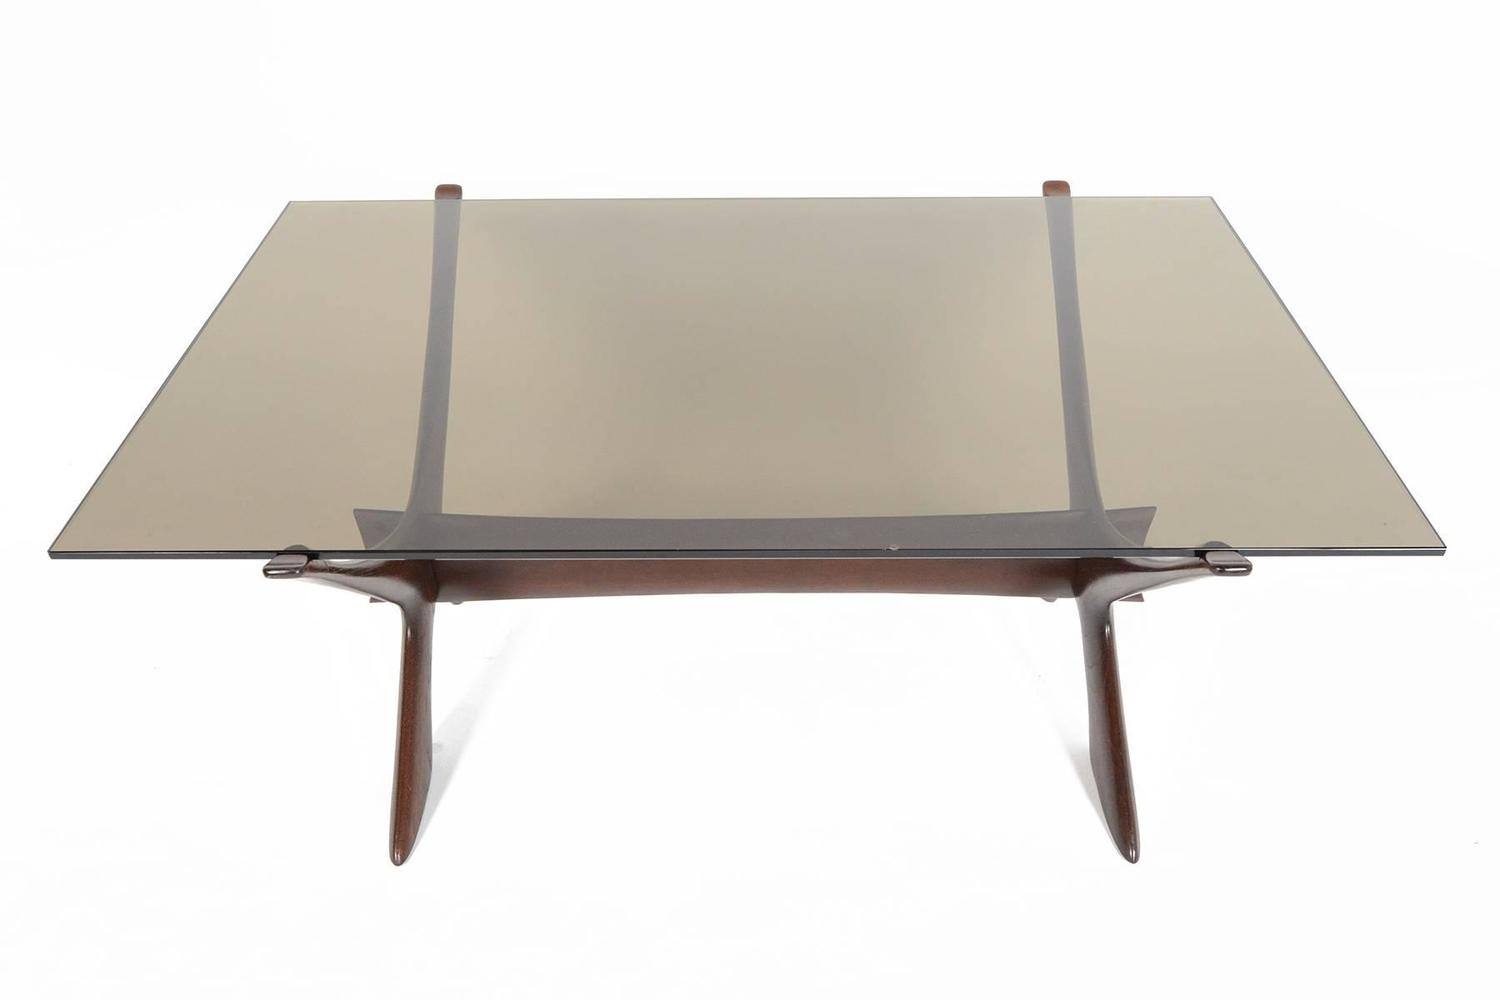 Fredrik Schriever Abeln Condor Coffee Table In Stained Teak And Glass For Sale At 1stdibs